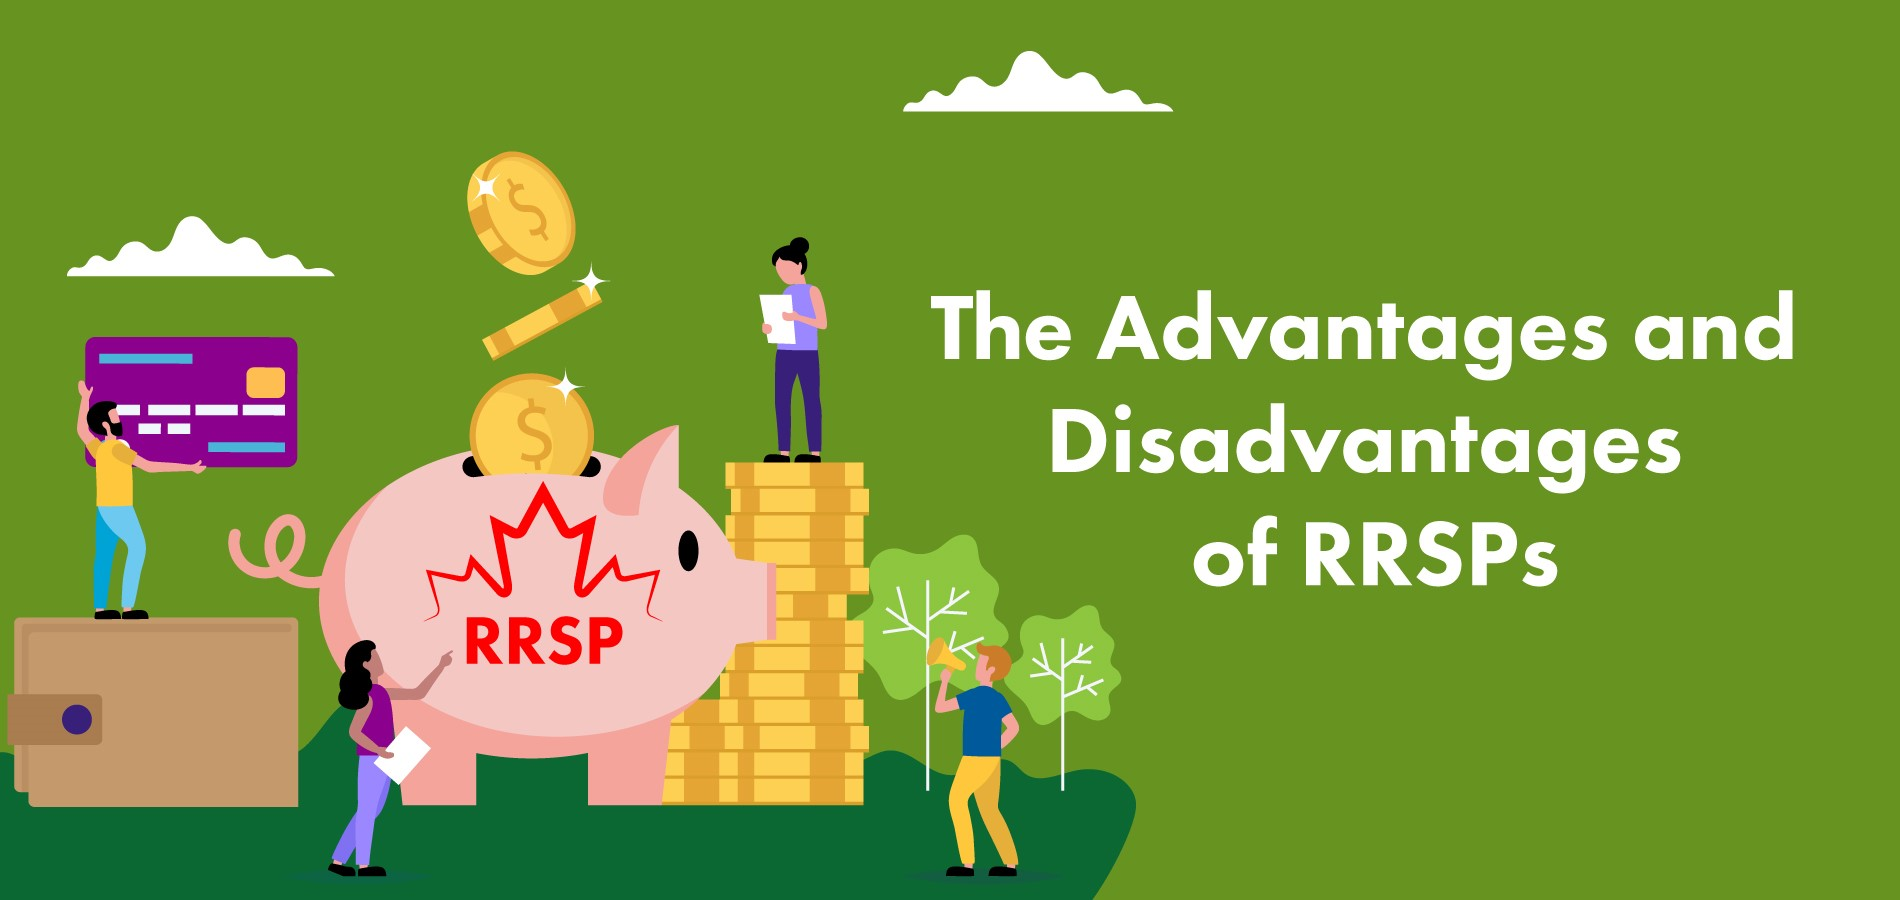 The Advantages and Disadvantages of RRSPs